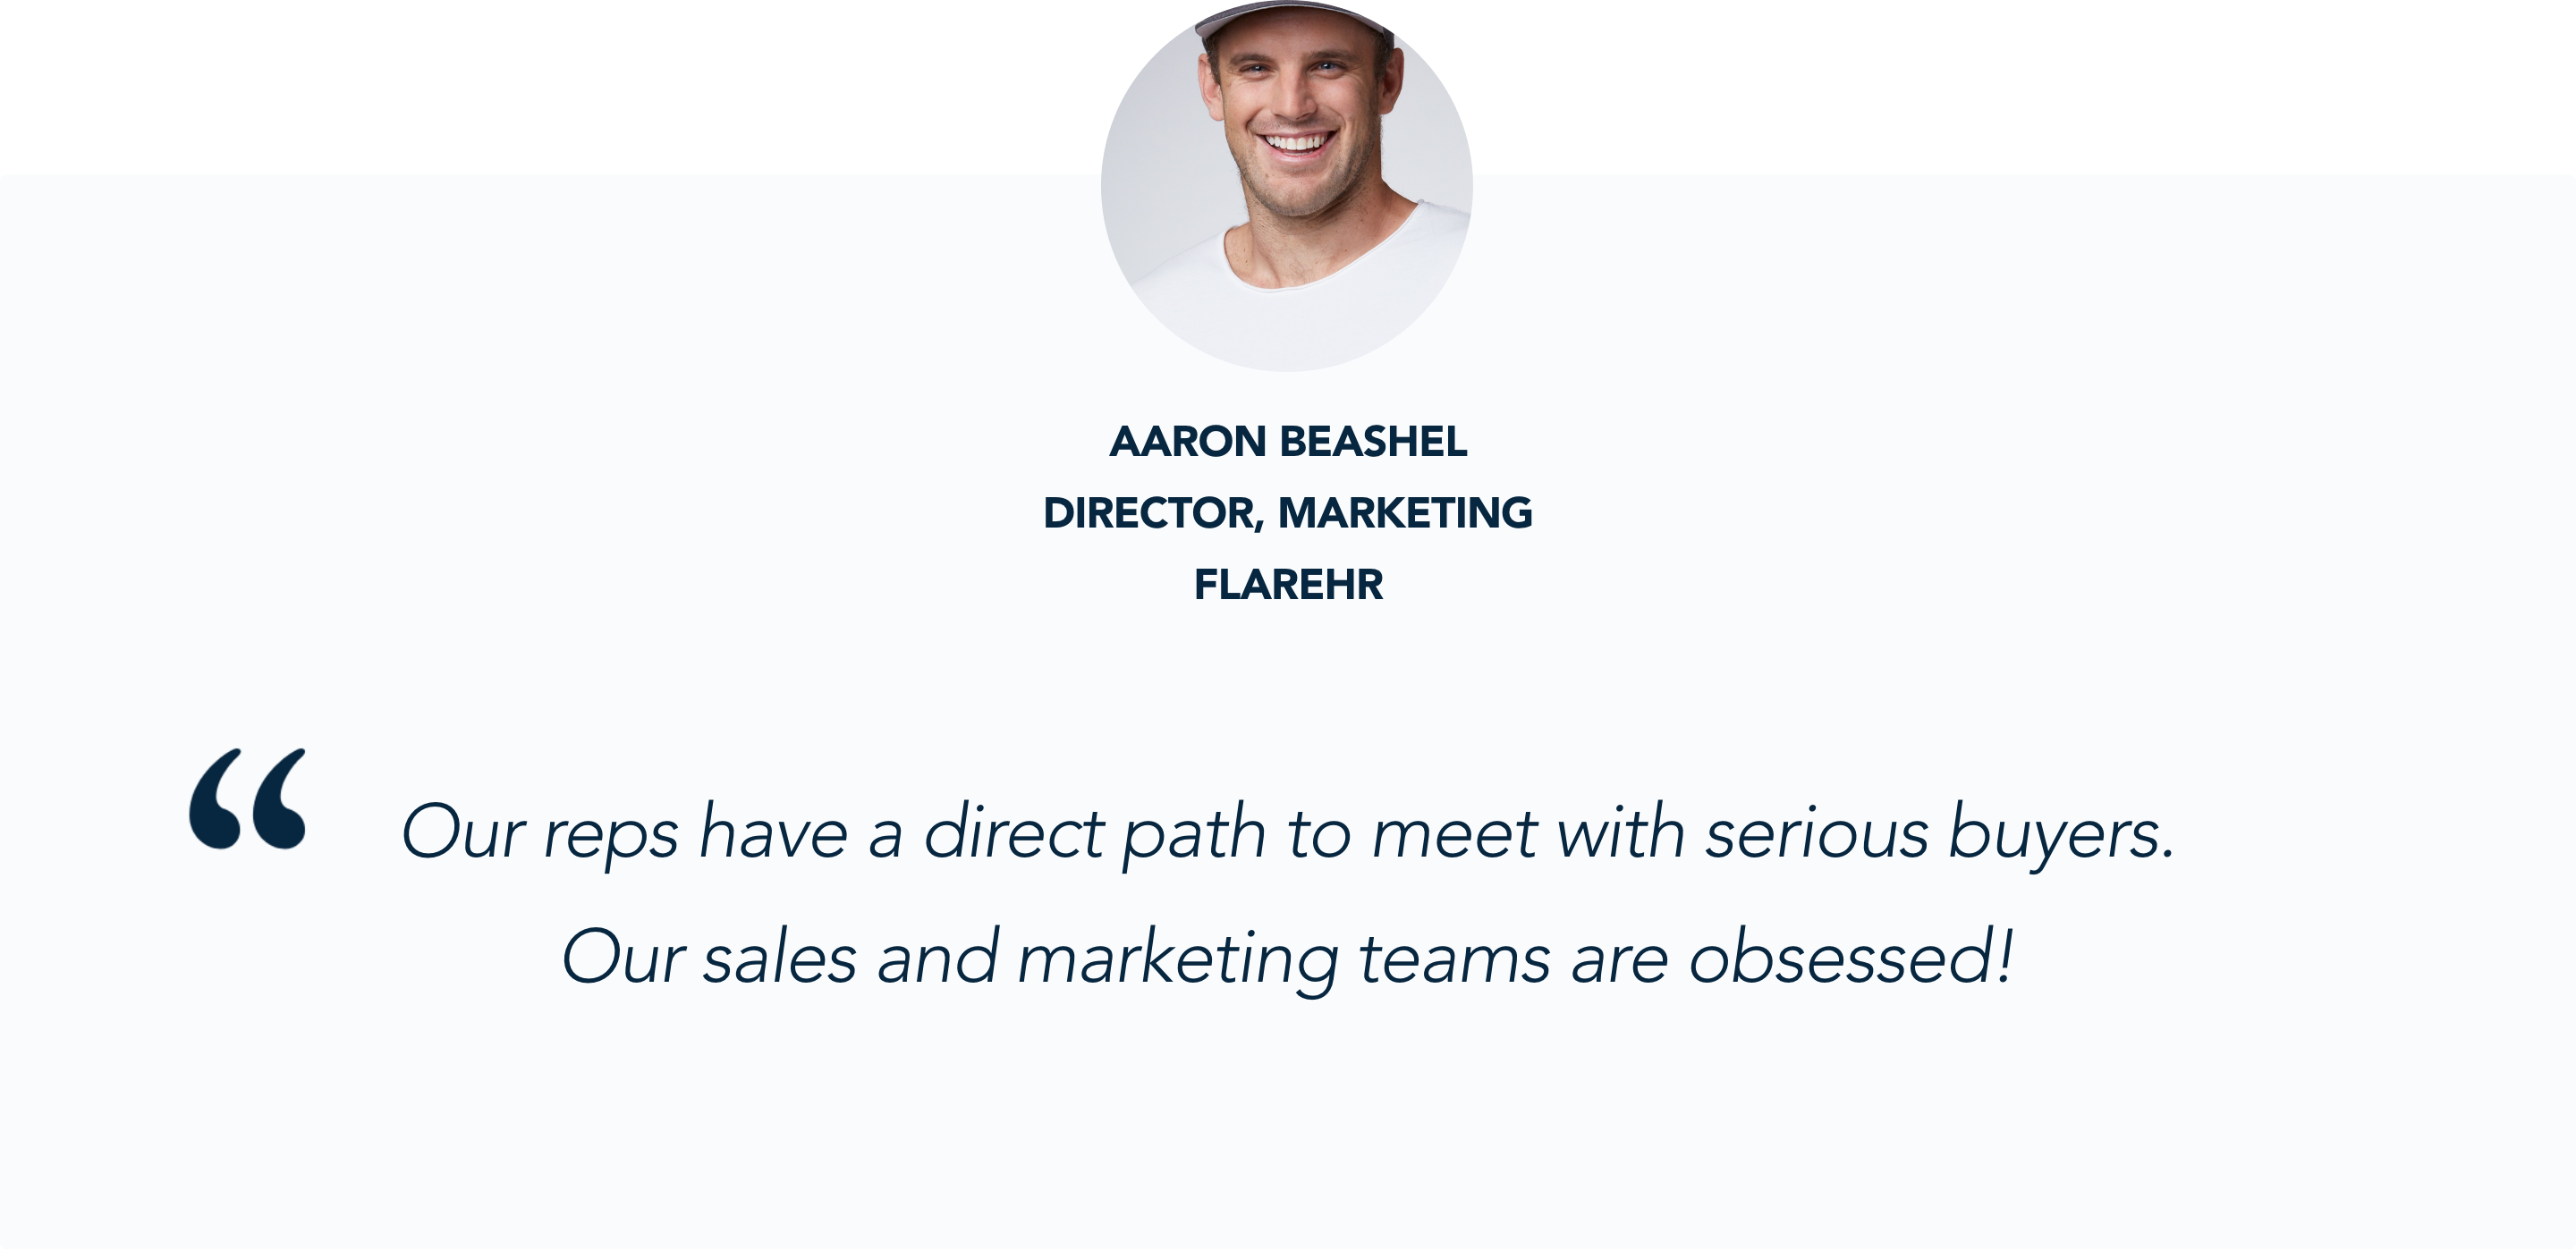 Aaron Beashel, Director of Marketing at FlareHR, talks about why Convesational Marketing is so important